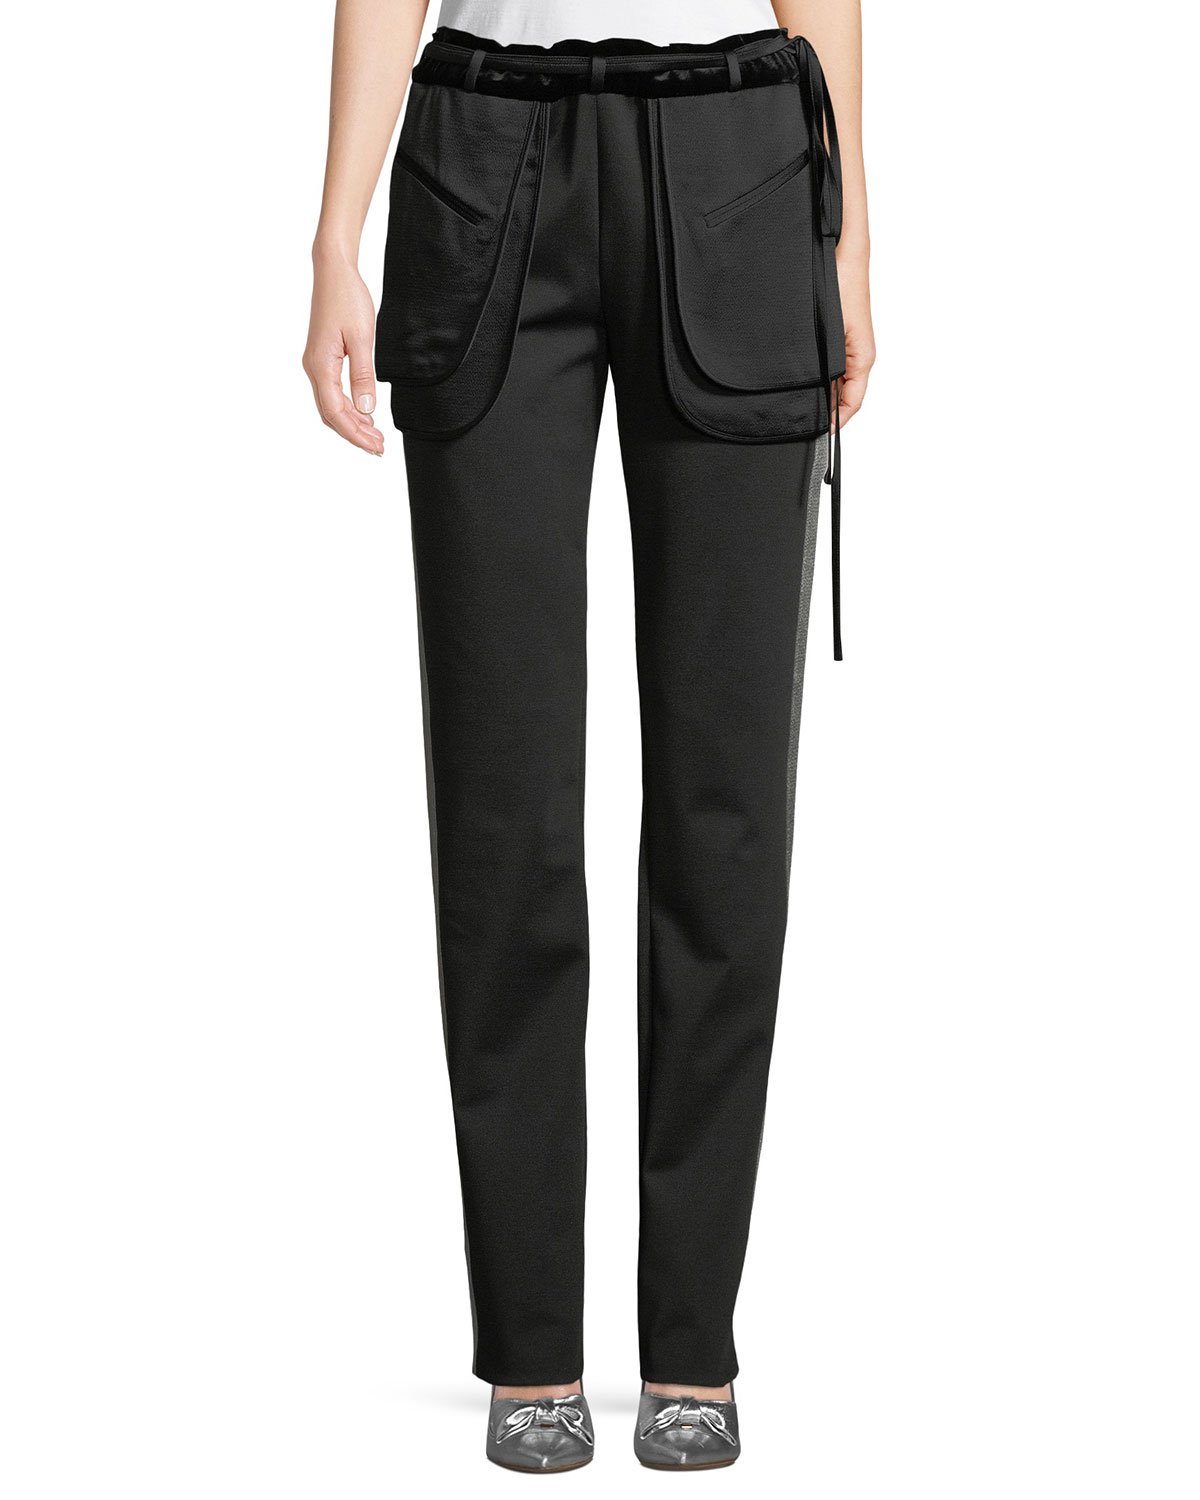 Inside-Out Pocket Satin Tech Jersey Straight-Leg Pants